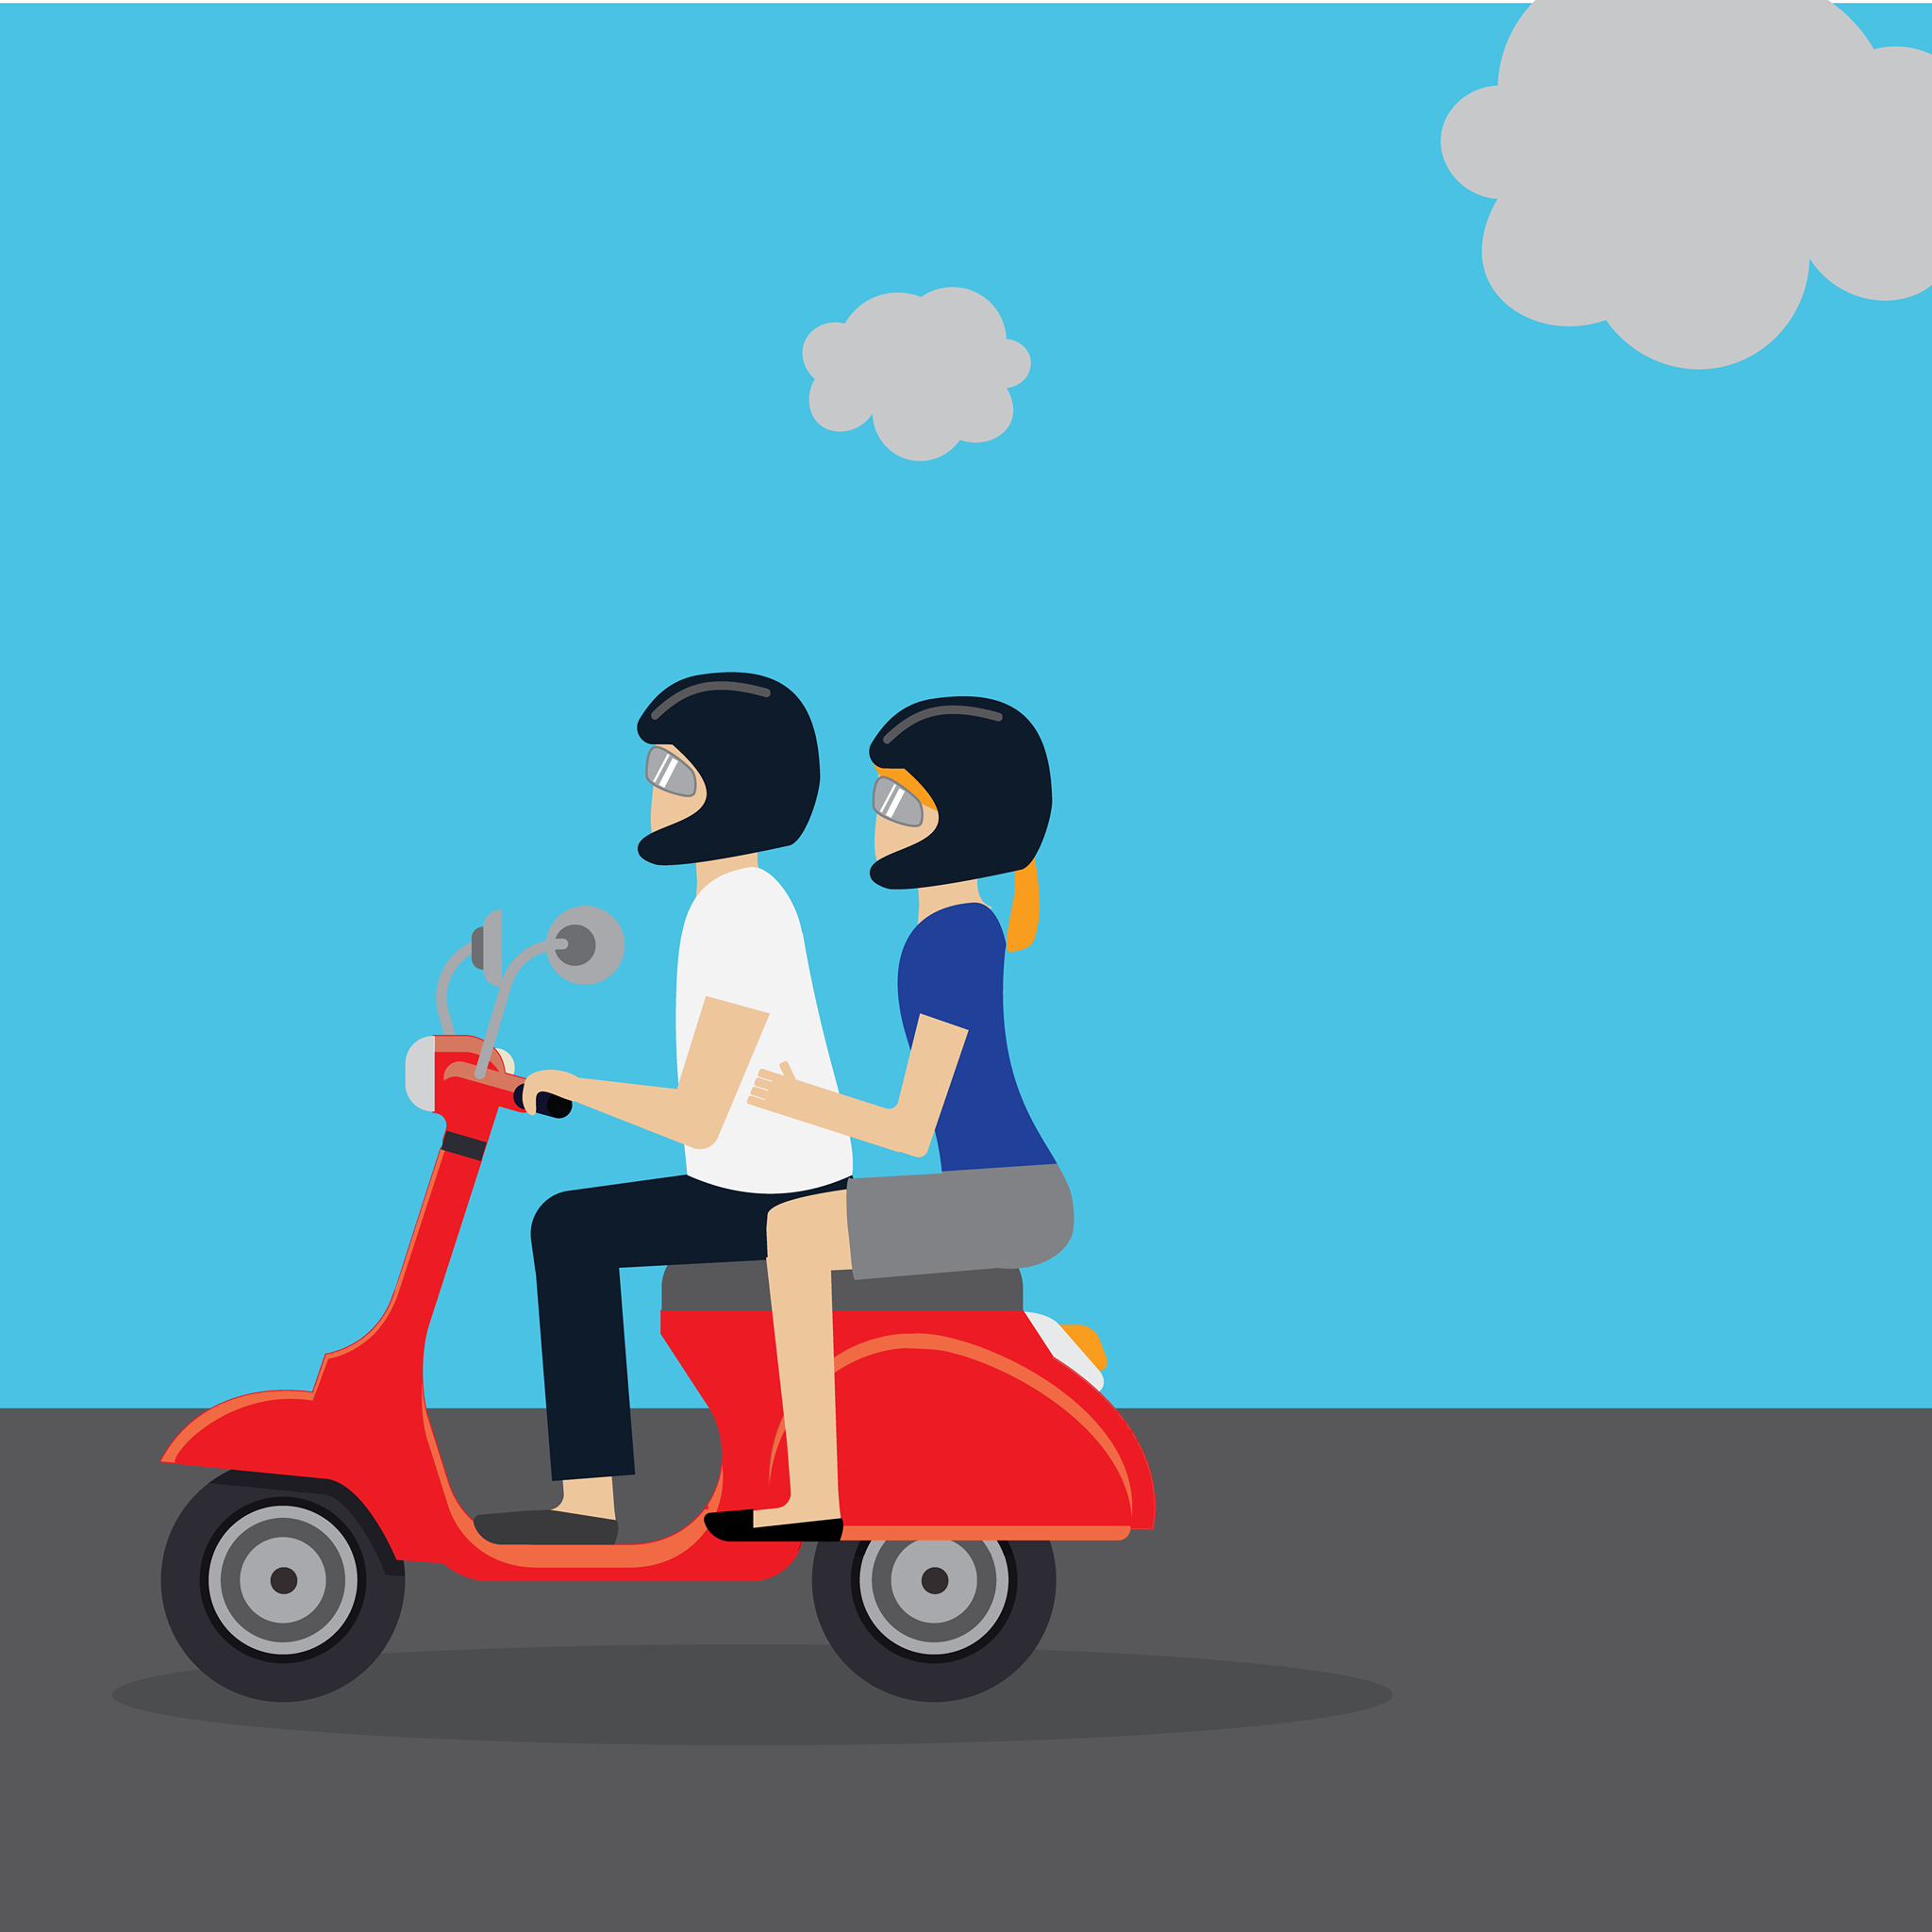 Travel insurance illustrations by Fee for Allianz Global